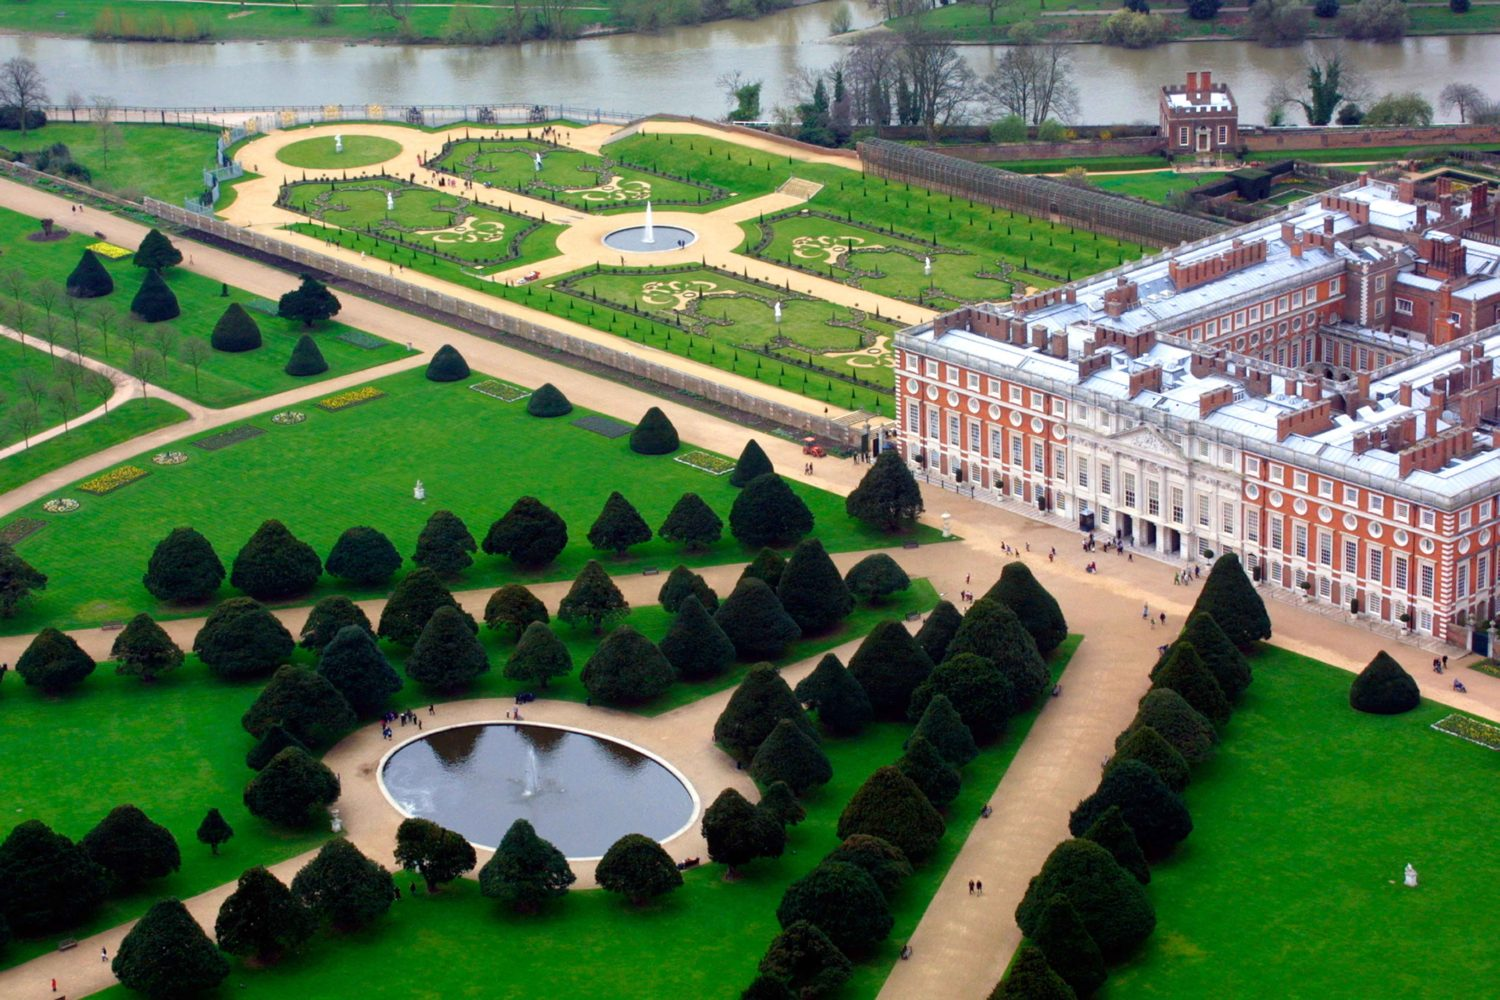 Aerial view of Hampton Court Palace and gardens in Greater London. Image shot 2003. Exact date unknown.